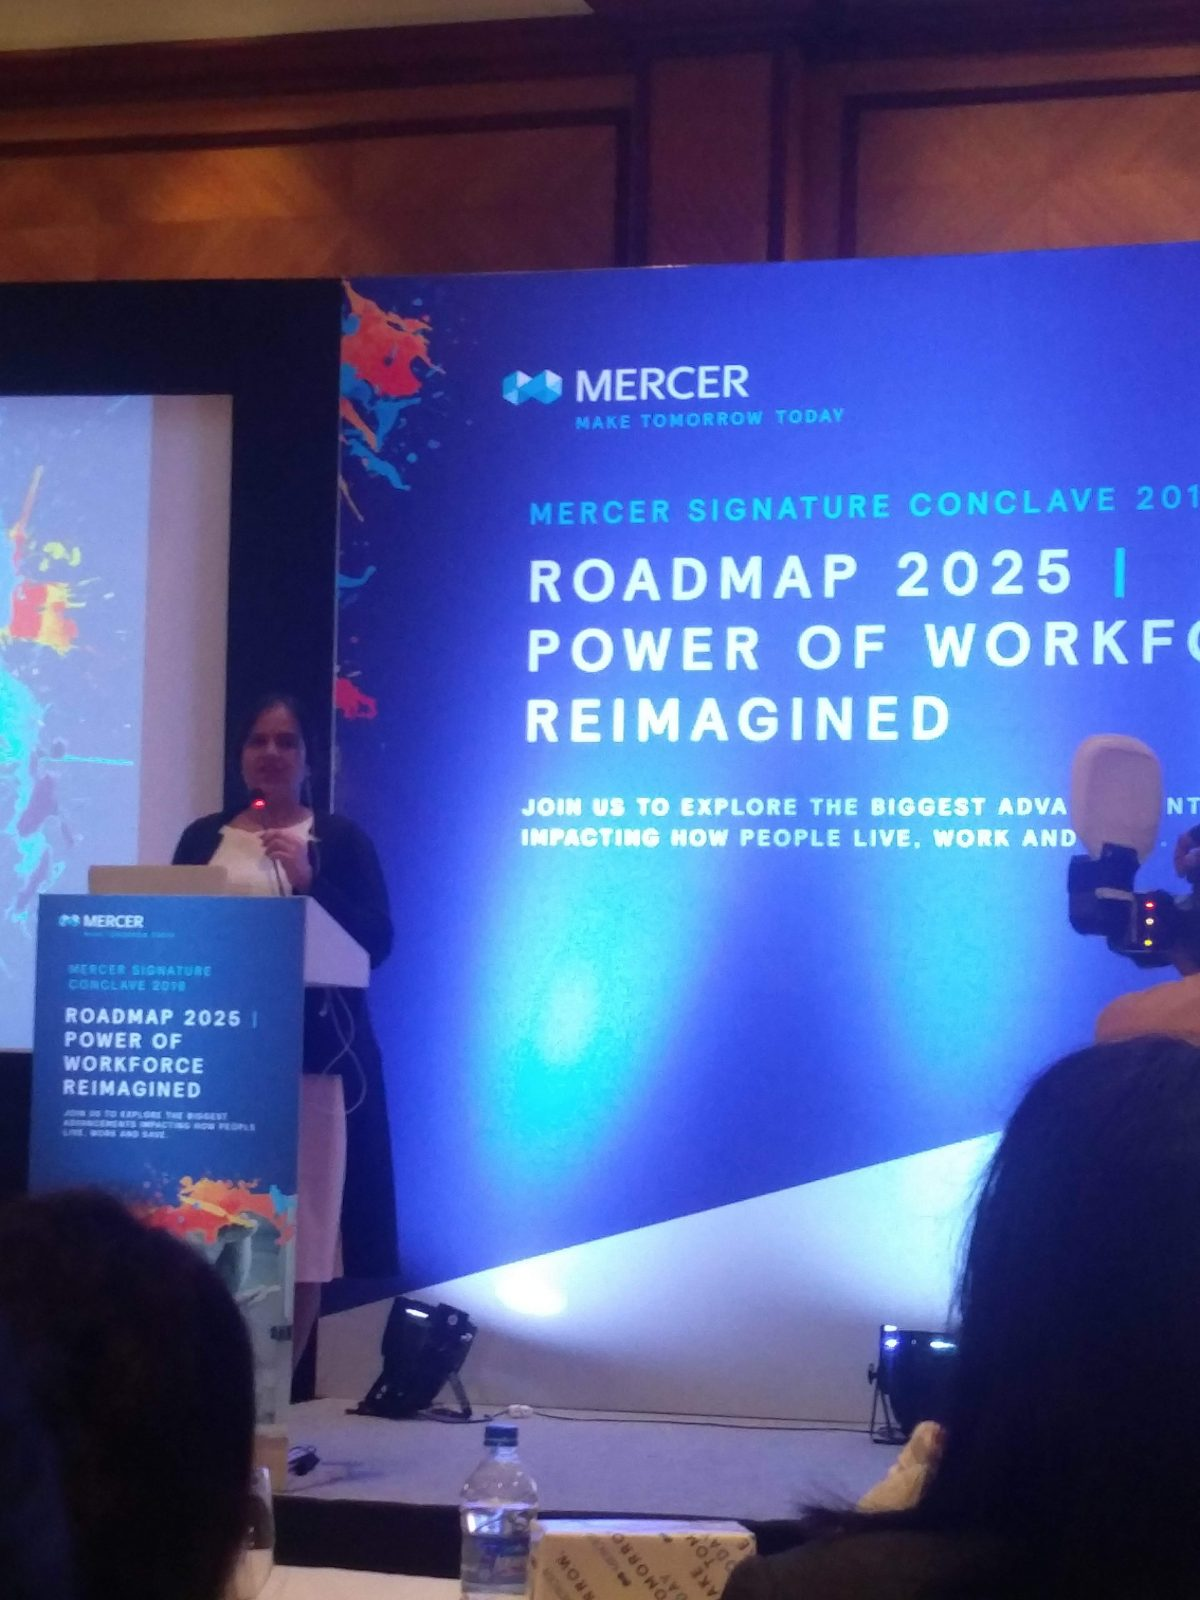 Mercer Keynote Address-Mumbai-December-2018: Nidhi goyal is speaking at podium in a white and black dress with a black jacket. Behind her, there is a huge hoarding in blue with the Mercer logo on the top left and below that it is written: Mercer Signature Conclave 2018. Roadmap 2025 Power of Workforce Reimagined.